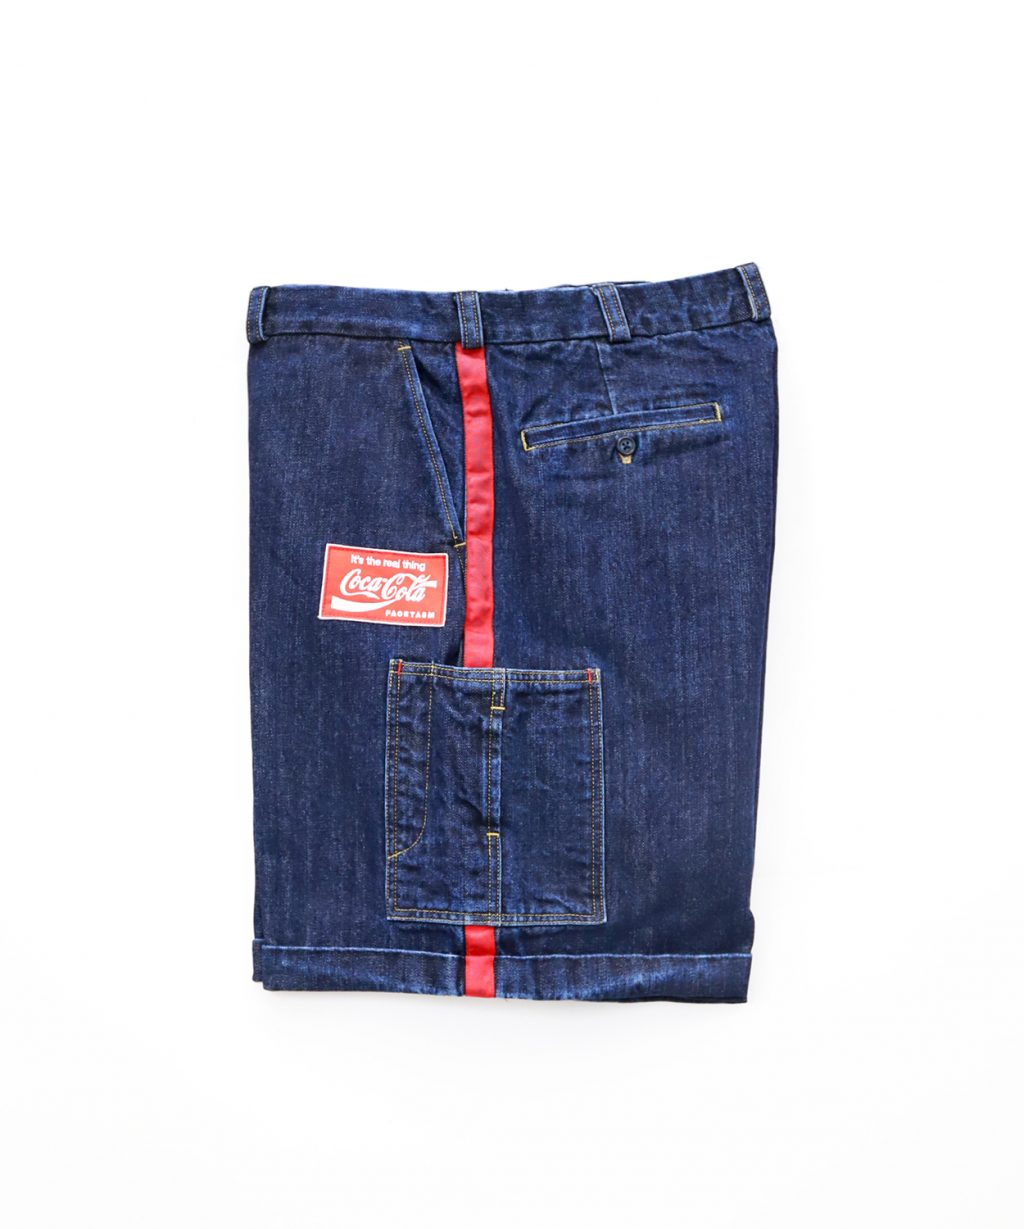 COCA-COLA-DENIM-SHORTS3-1024x1229.jpg